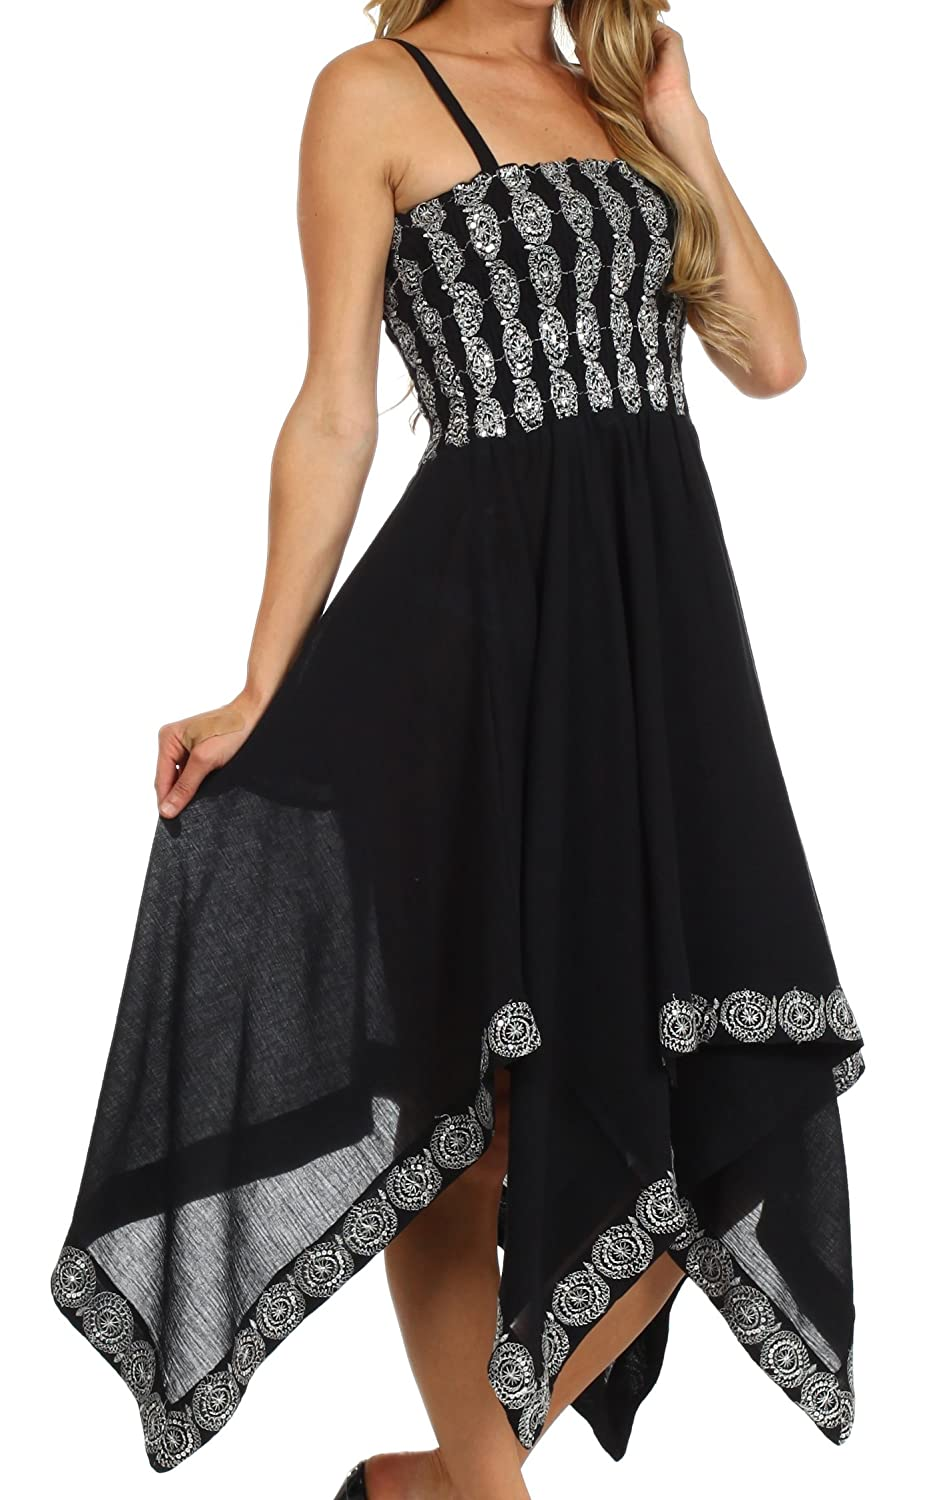 Sakkas 5502 Delia Sequin Handkerchief Hem Dress - Black - One Size at Amazon Womens Clothing store: